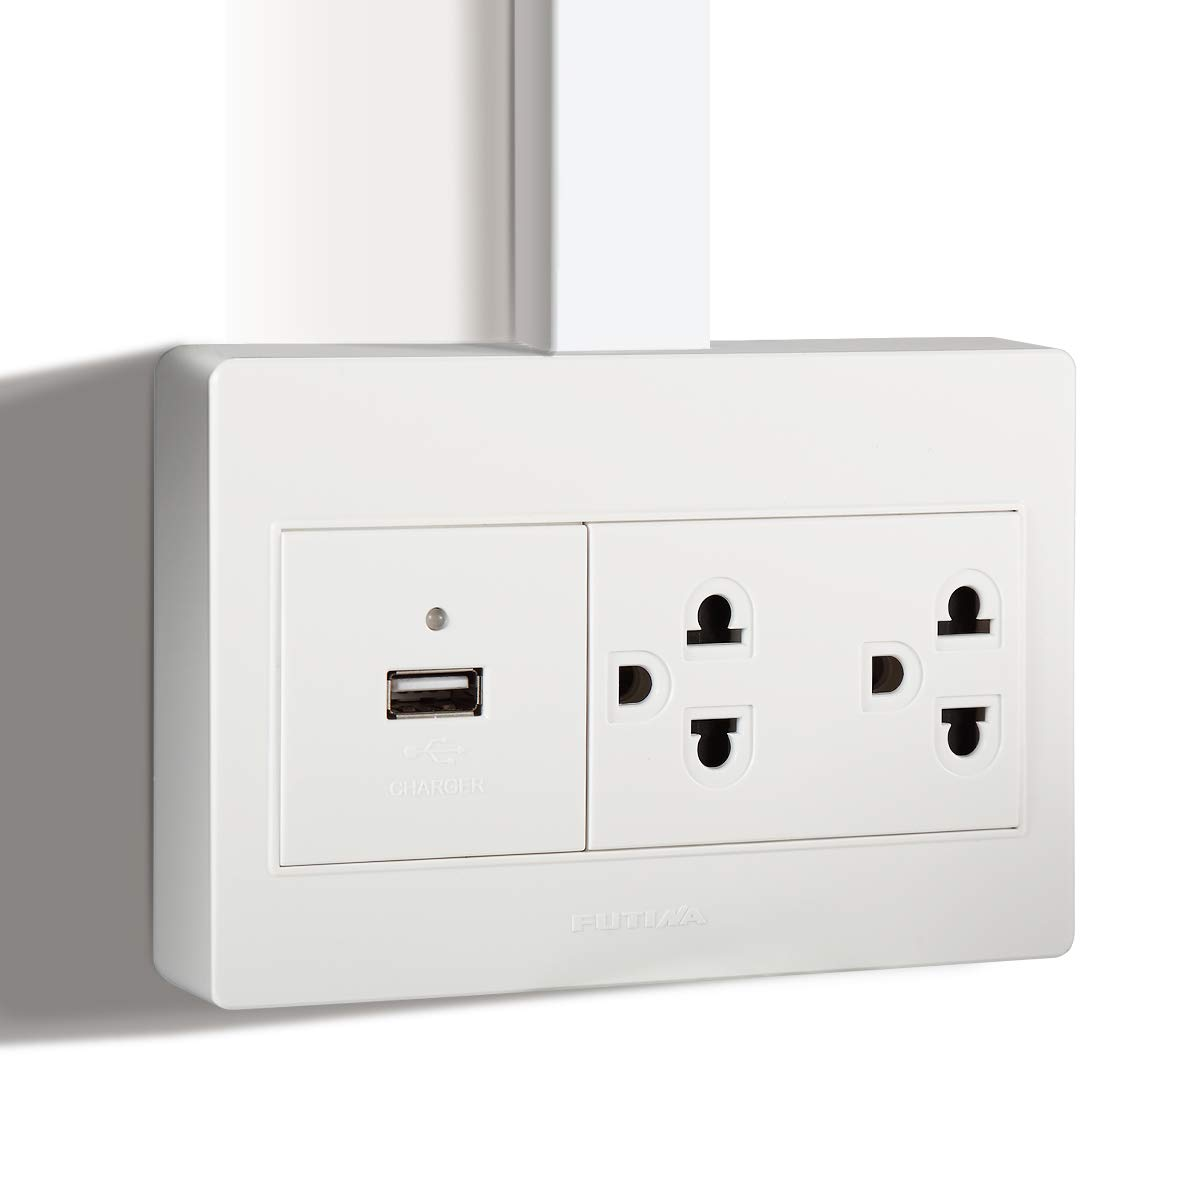 FUTINA Surface Mount Electrical Outlet Box, High Speed USB Charger Outlet with Wall Plates &Screw for Cable Raceway,15A Receptacle, Child Proof Safety,White